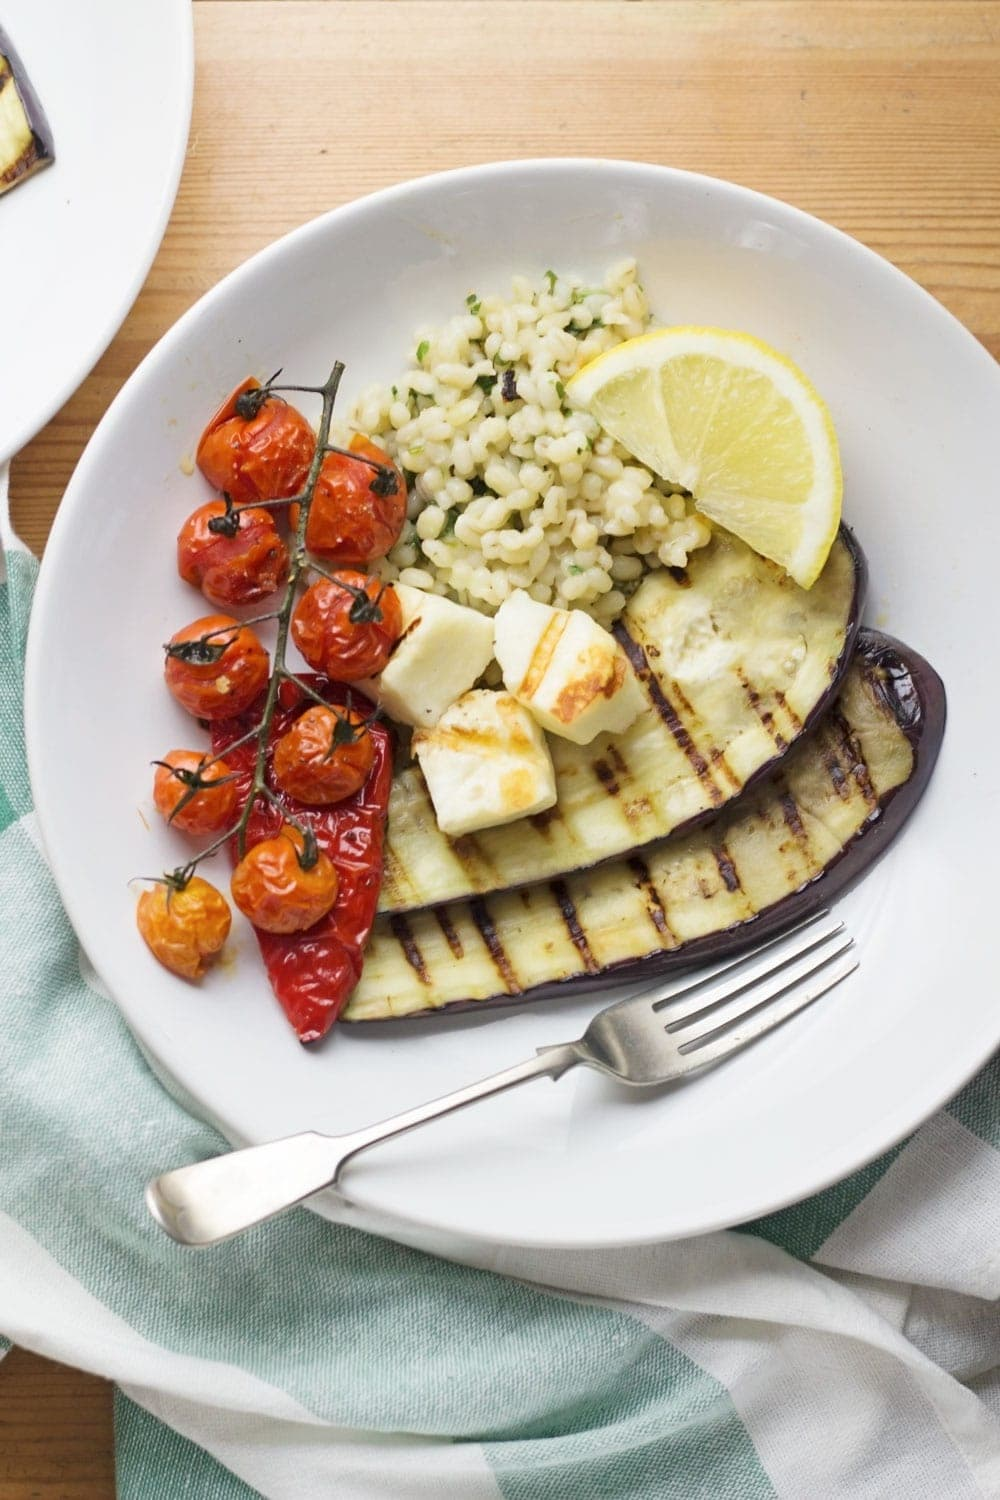 Garage This Griddled Halloumi Served Over Herby Roasted Veg Griddled Halloumi Summer Dinner Is Here Herby Barley Roasted Veg Cook Report How To Cook Pearl Barley Porridge How To Cook Pearl Barley Sala nice food How To Cook Pearl Barley